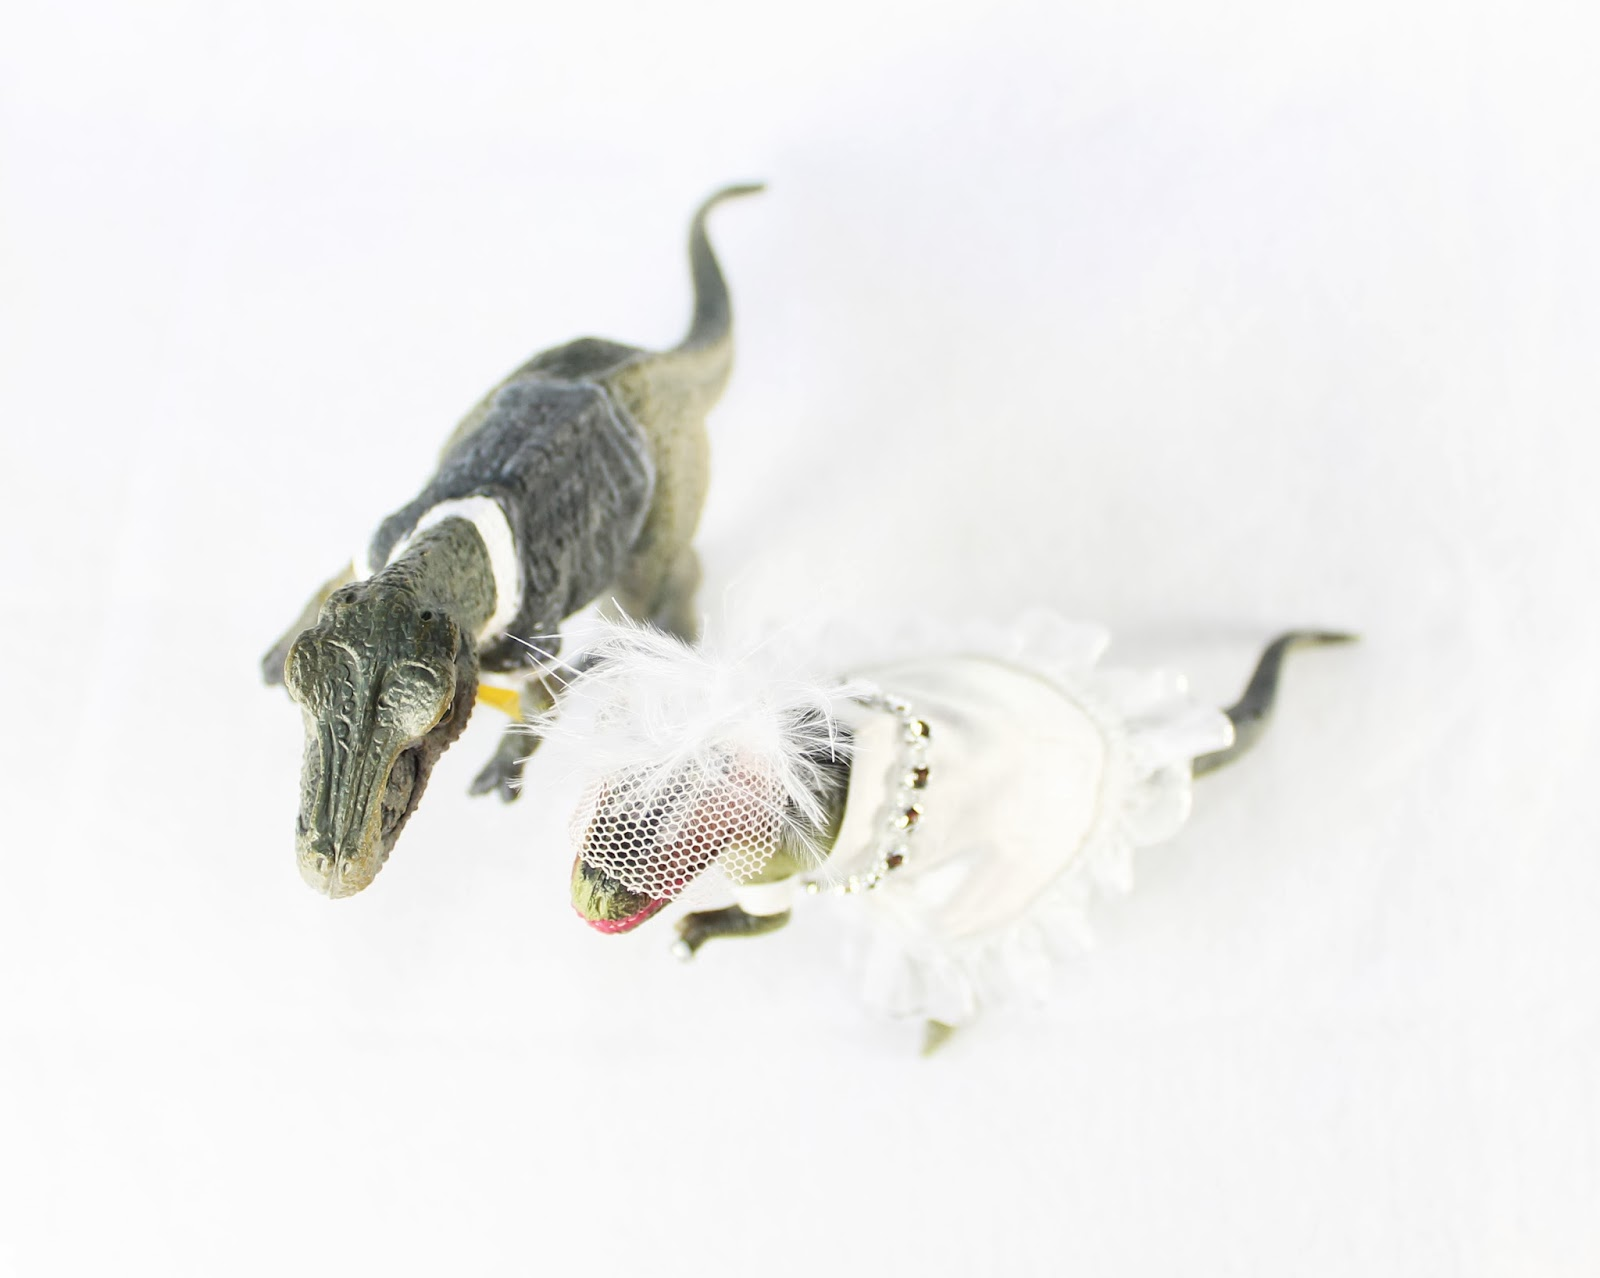 The ragged wren dinosaur wedding toppers they came out soooo cute that i thought i would re list it in case anyone else might want a quirky wedding topperturns out they did ive sold over 20 nvjuhfo Image collections